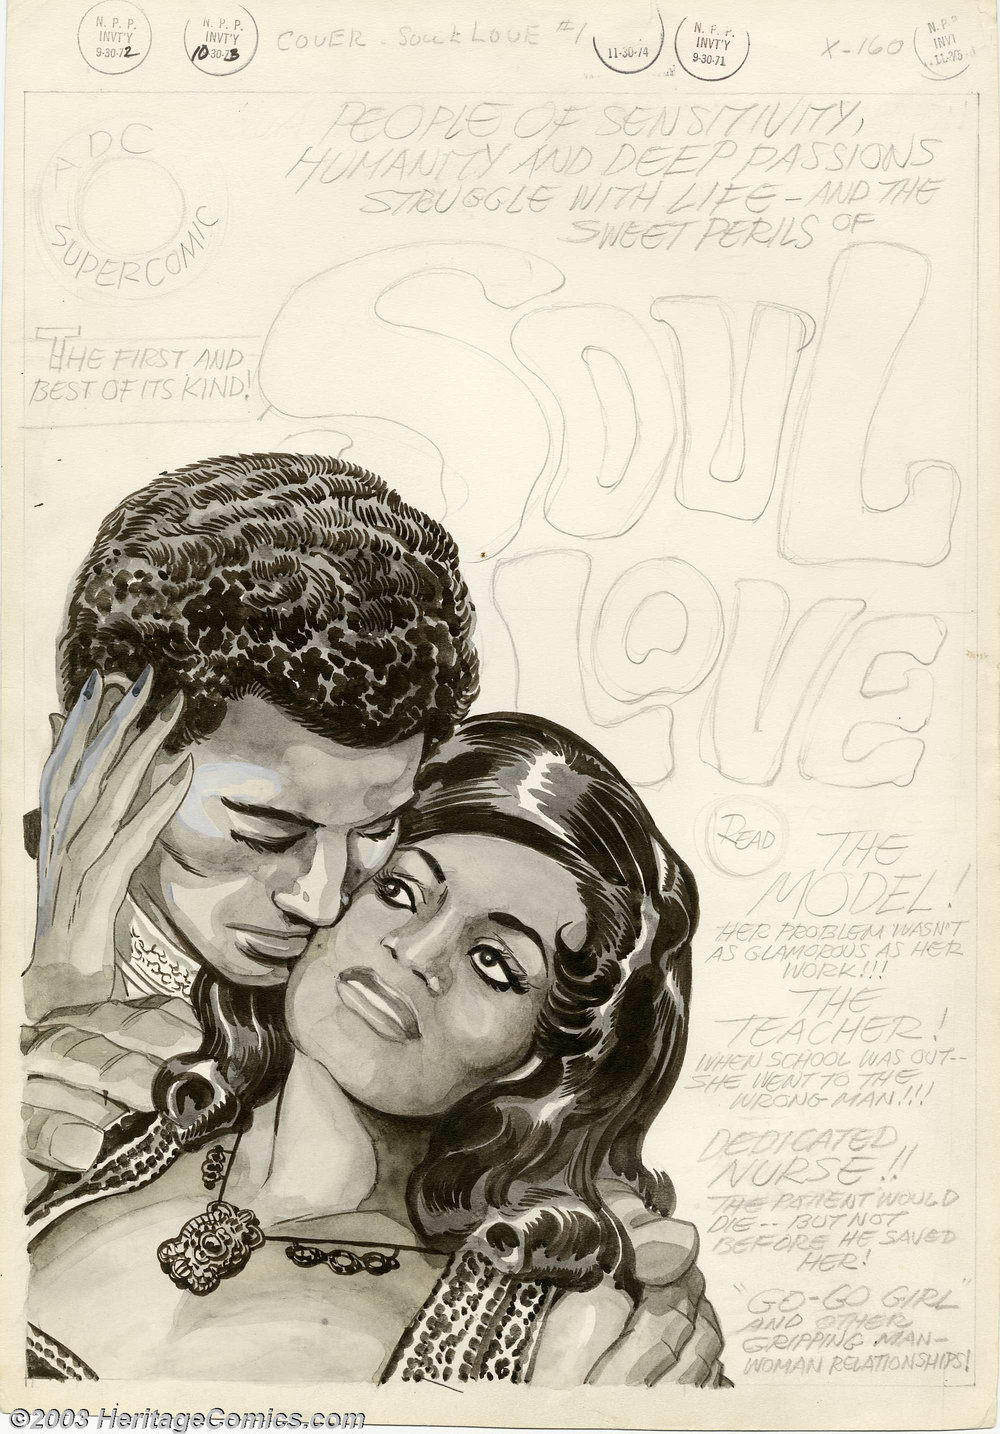 Cover of Soul Love #1 (Unpublished), Image from Heritage Auctions.